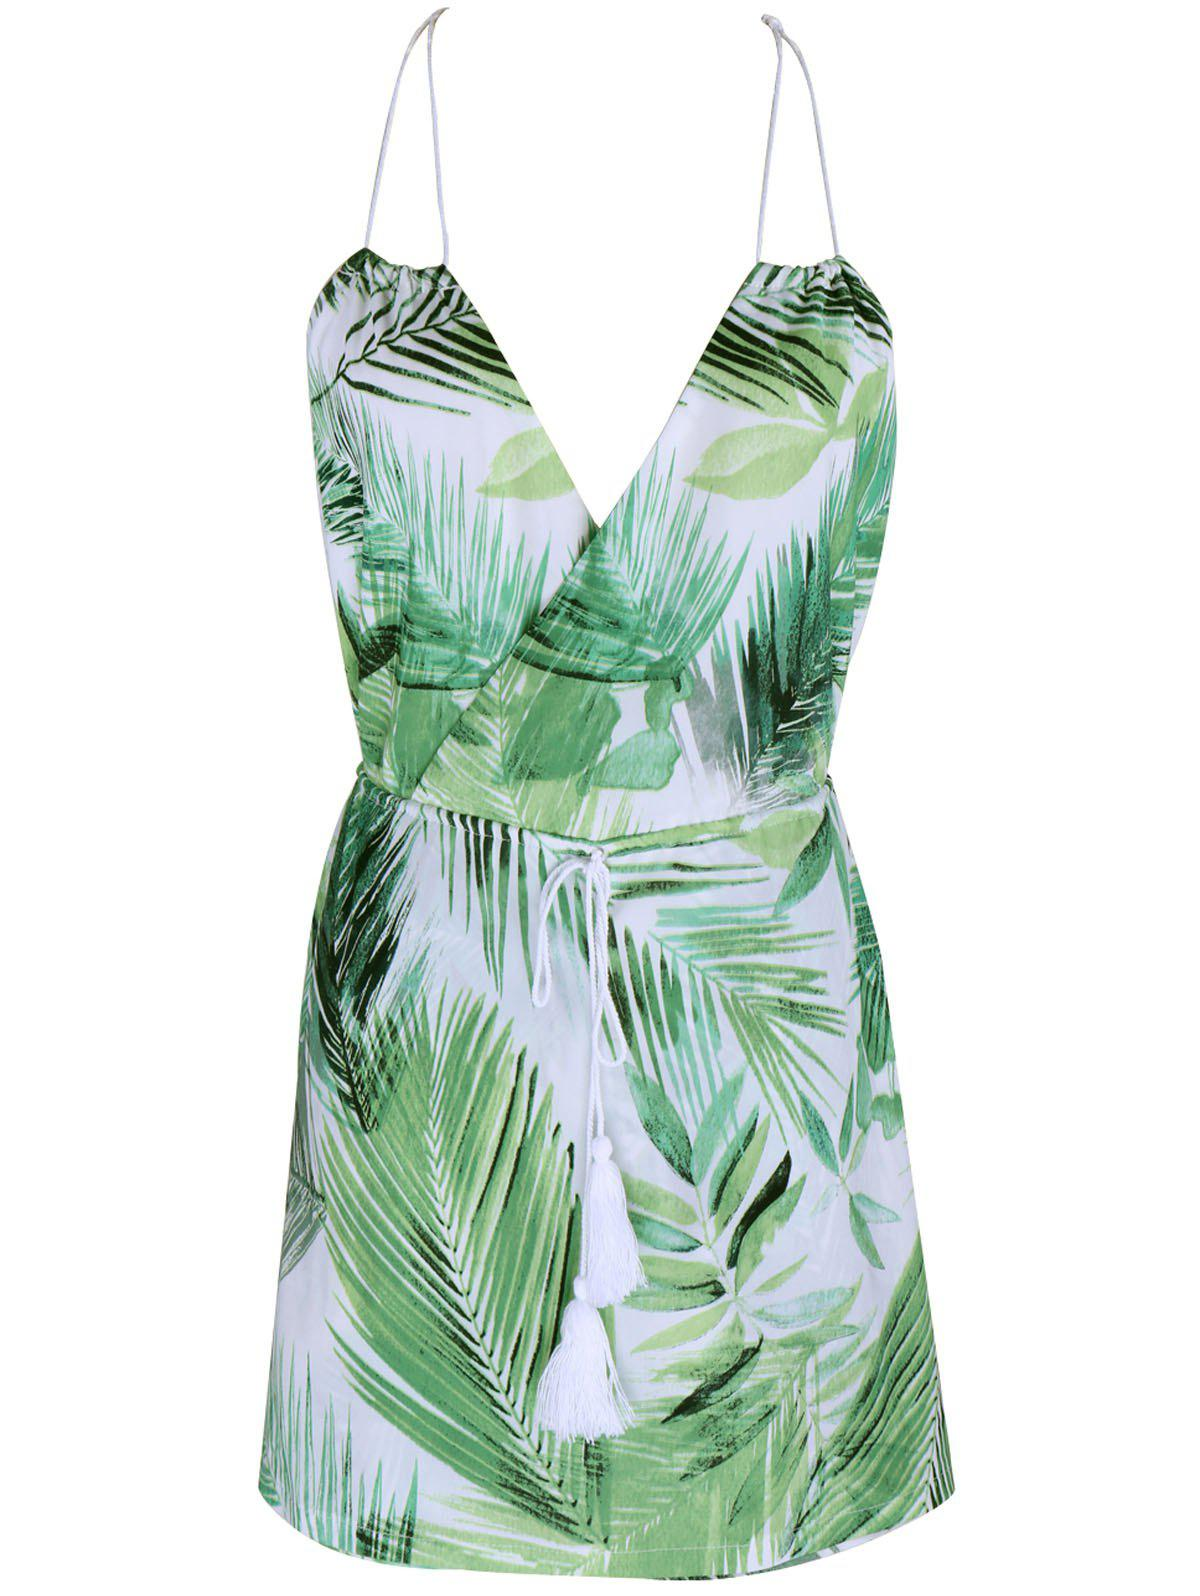 Tropical Halter Neck Leaf Romper For Women - GREEN M